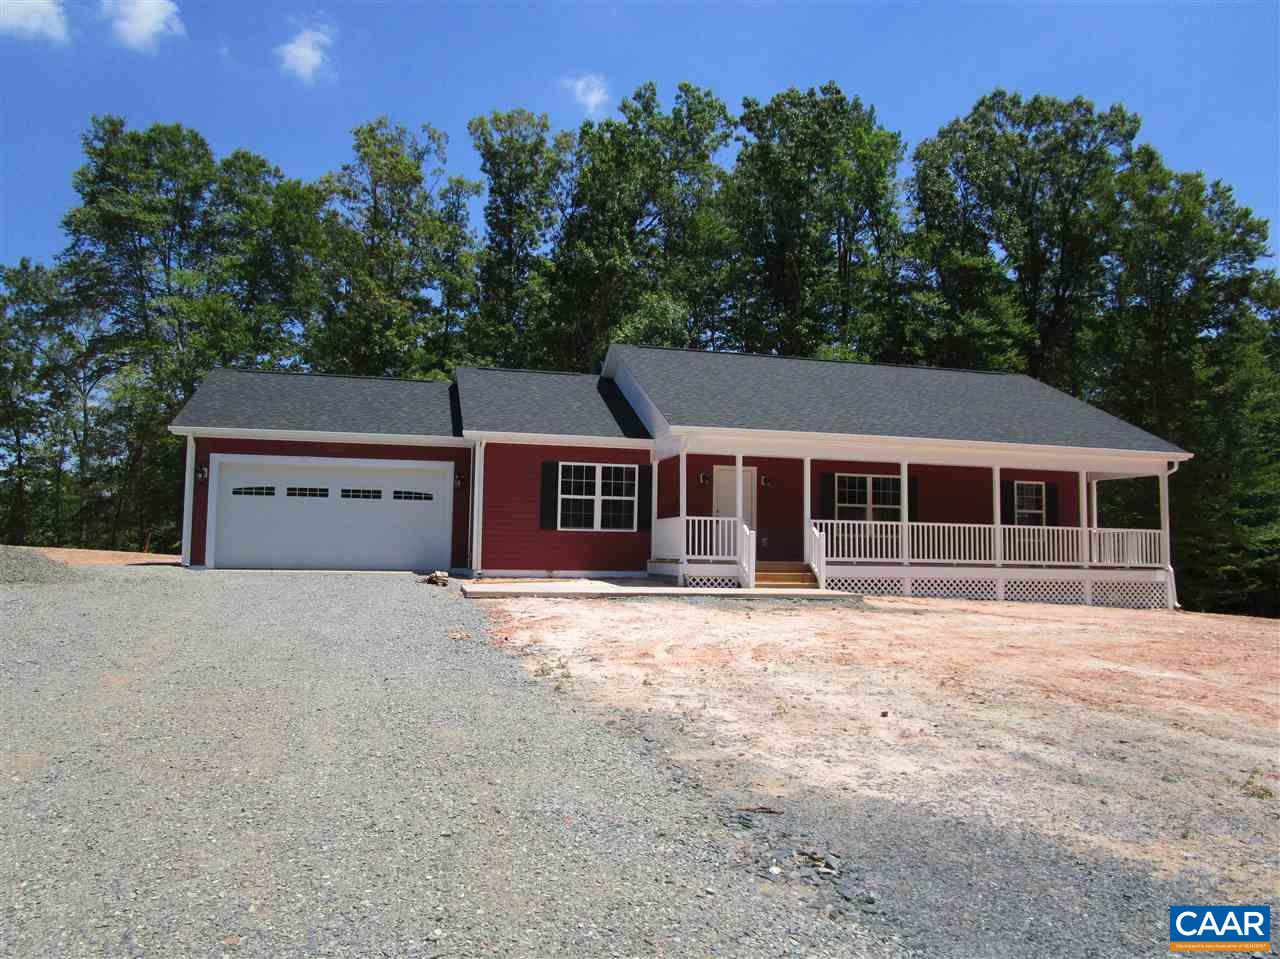 home for sale , MLS #575056, 6814 Courthouse Rd